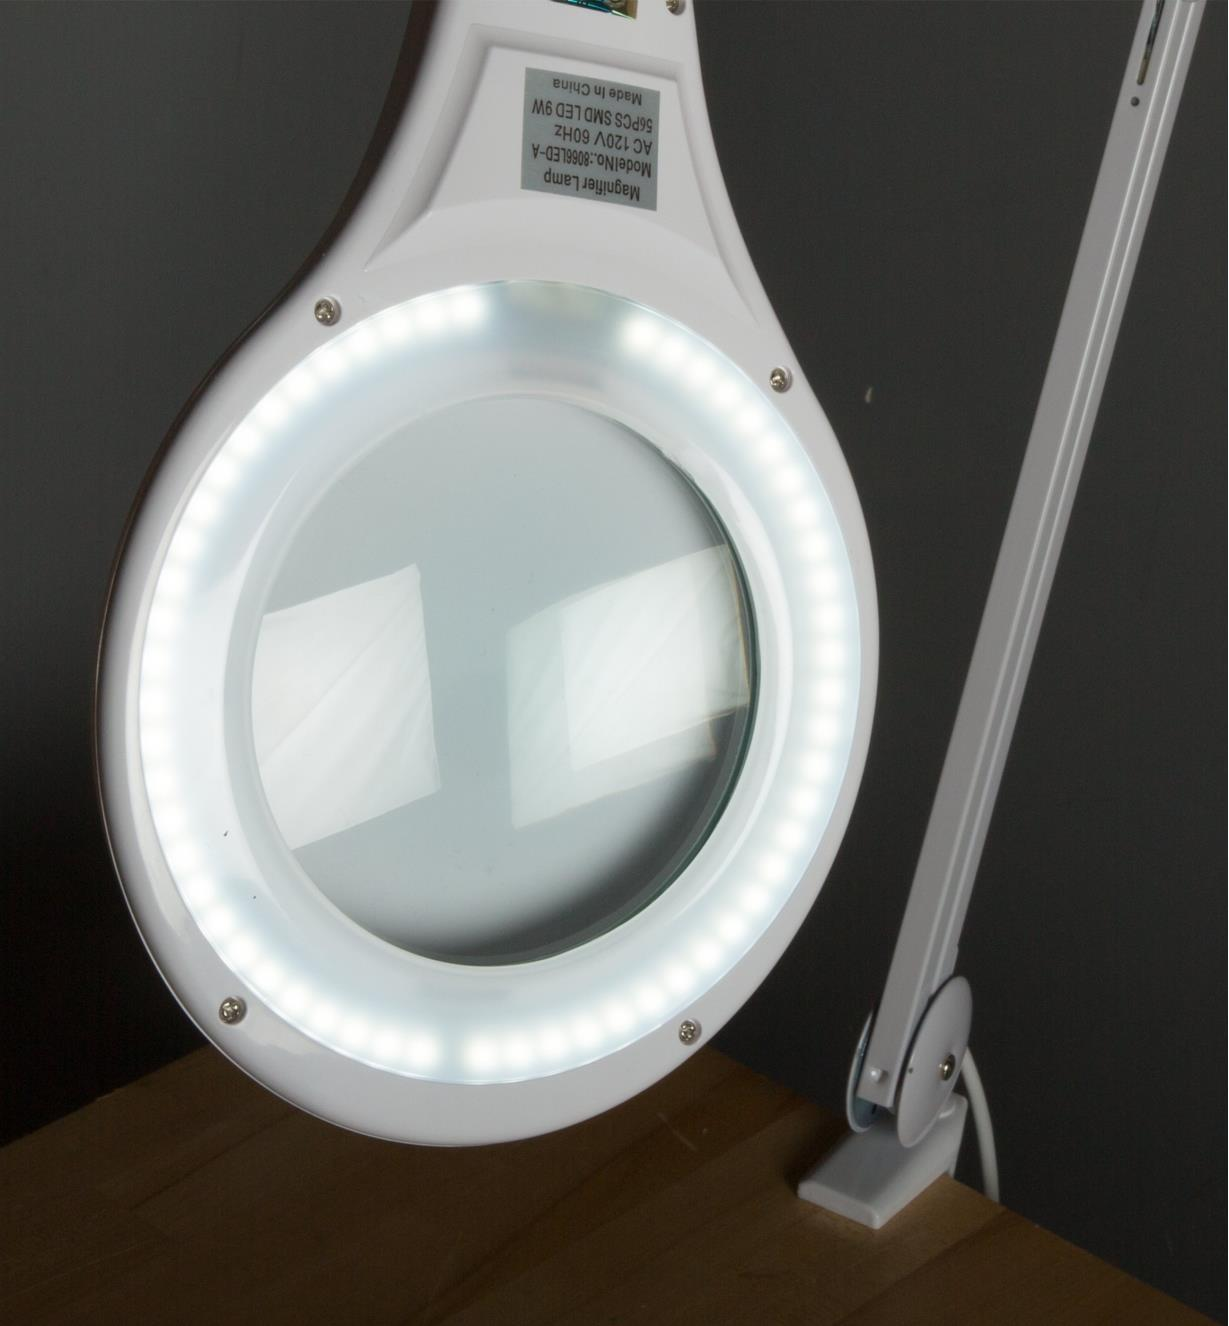 17J3030 - LED Magnifying Bench Lamp